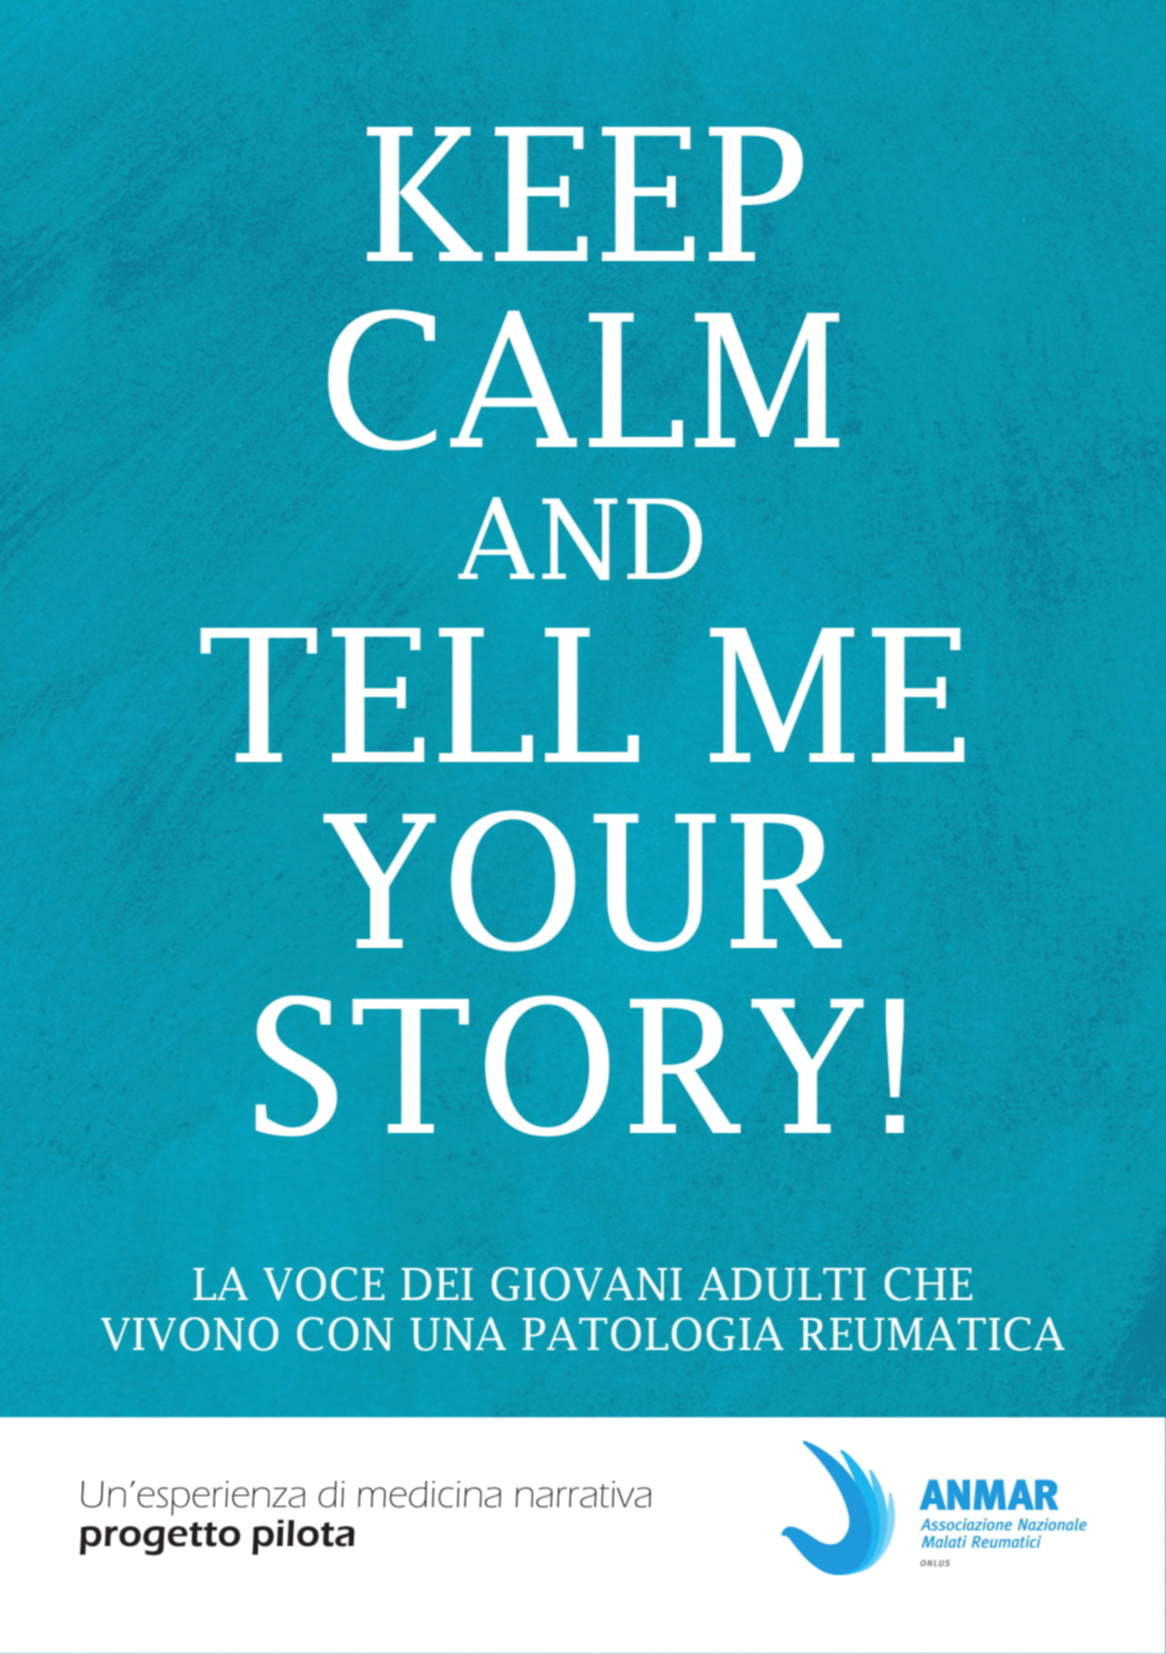 KEEP_CALM_AND_TELL_ME_YOUR_STORY-pagine_affiancate-01